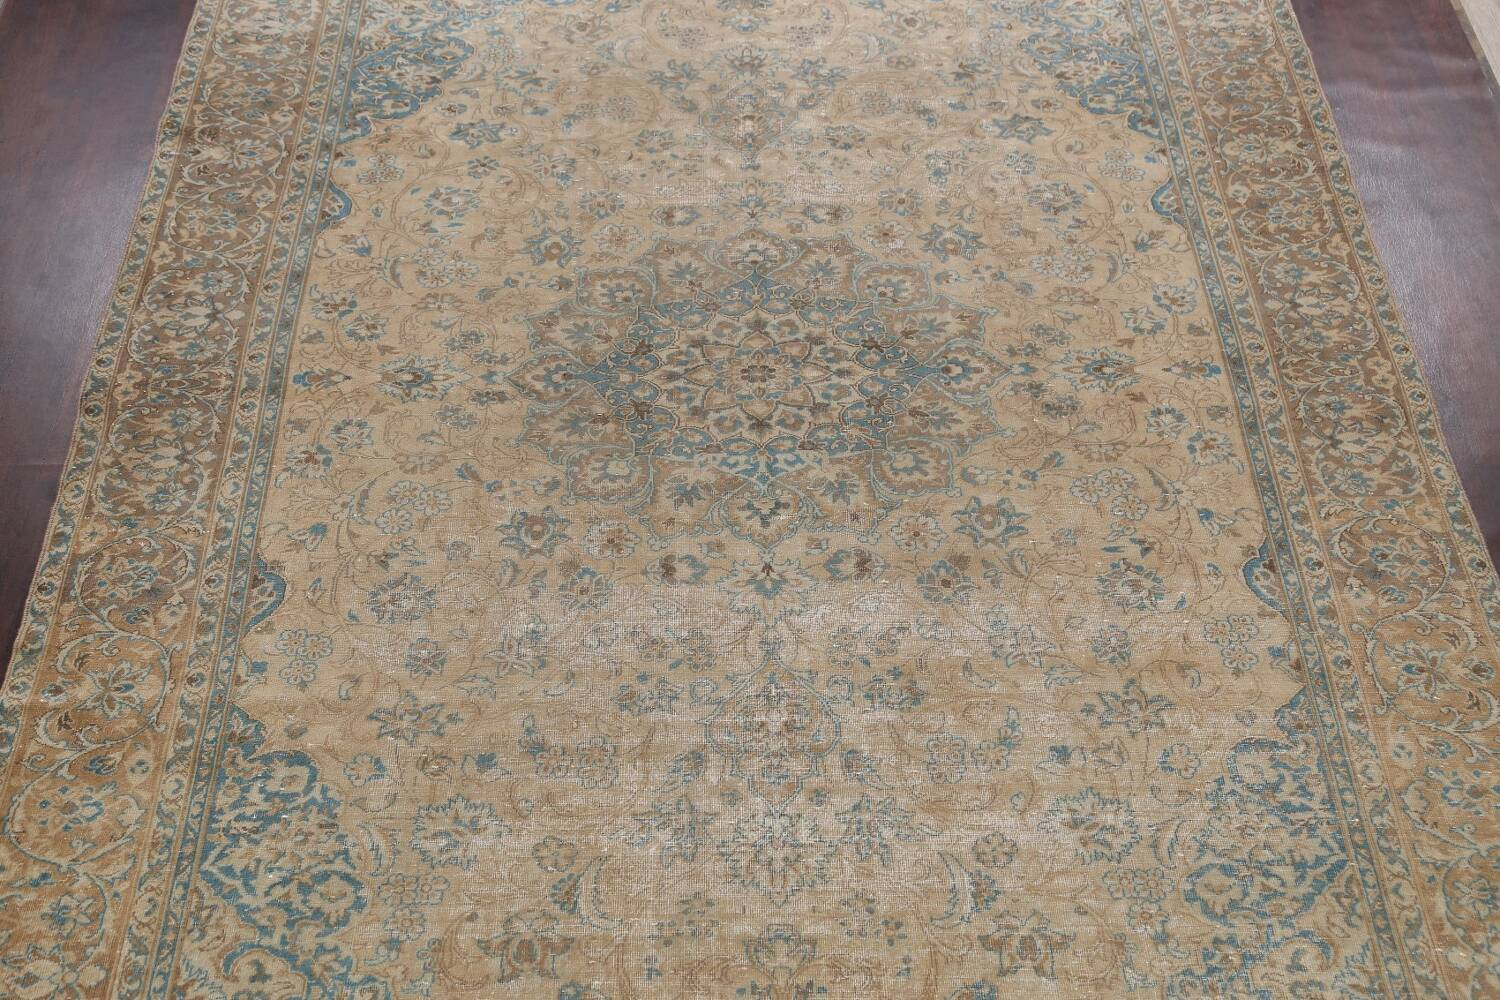 Antique Muted Floral Mashad Persian Area Rug 9x13 image 3